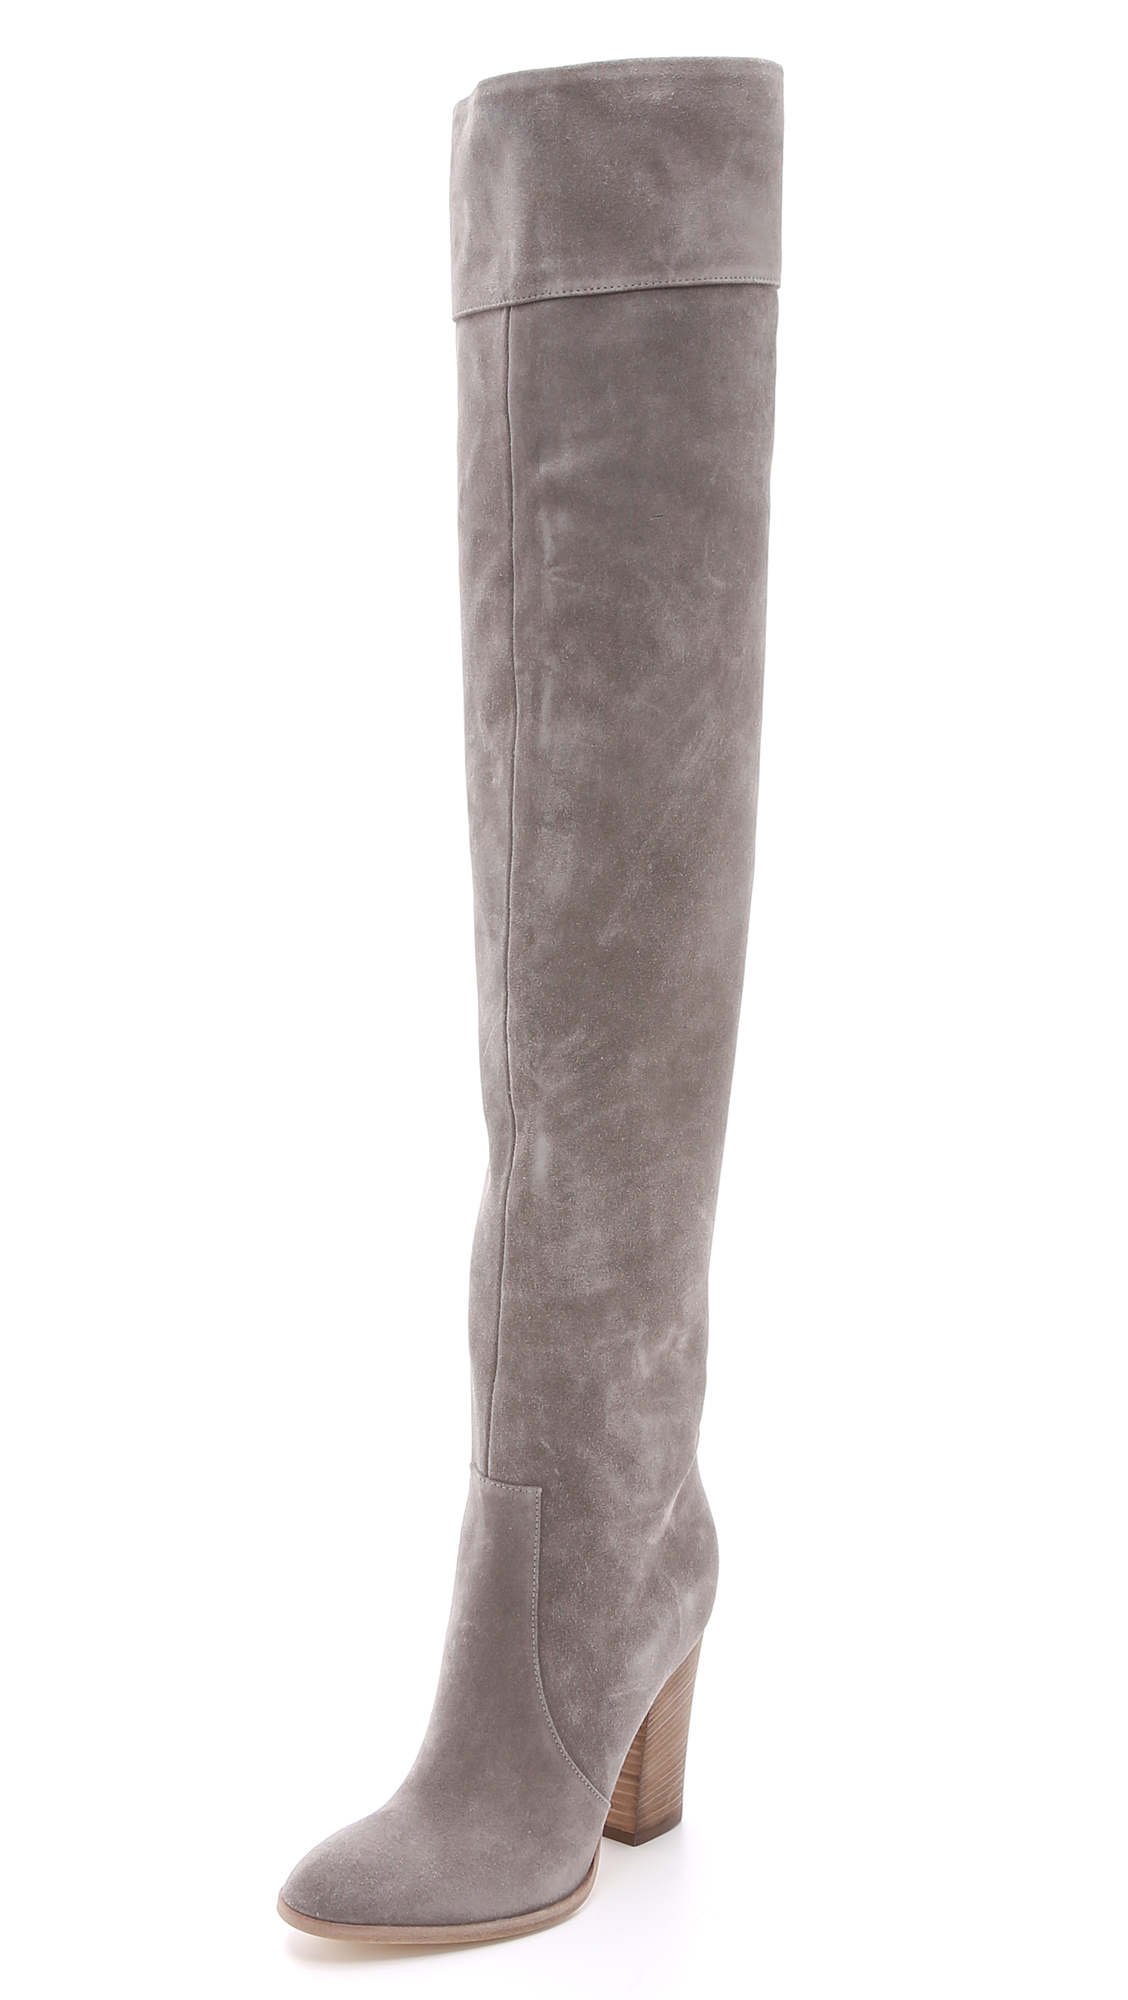 Club monaco Lisa Over The Knee Suede Boots - Grey in Gray | Lyst